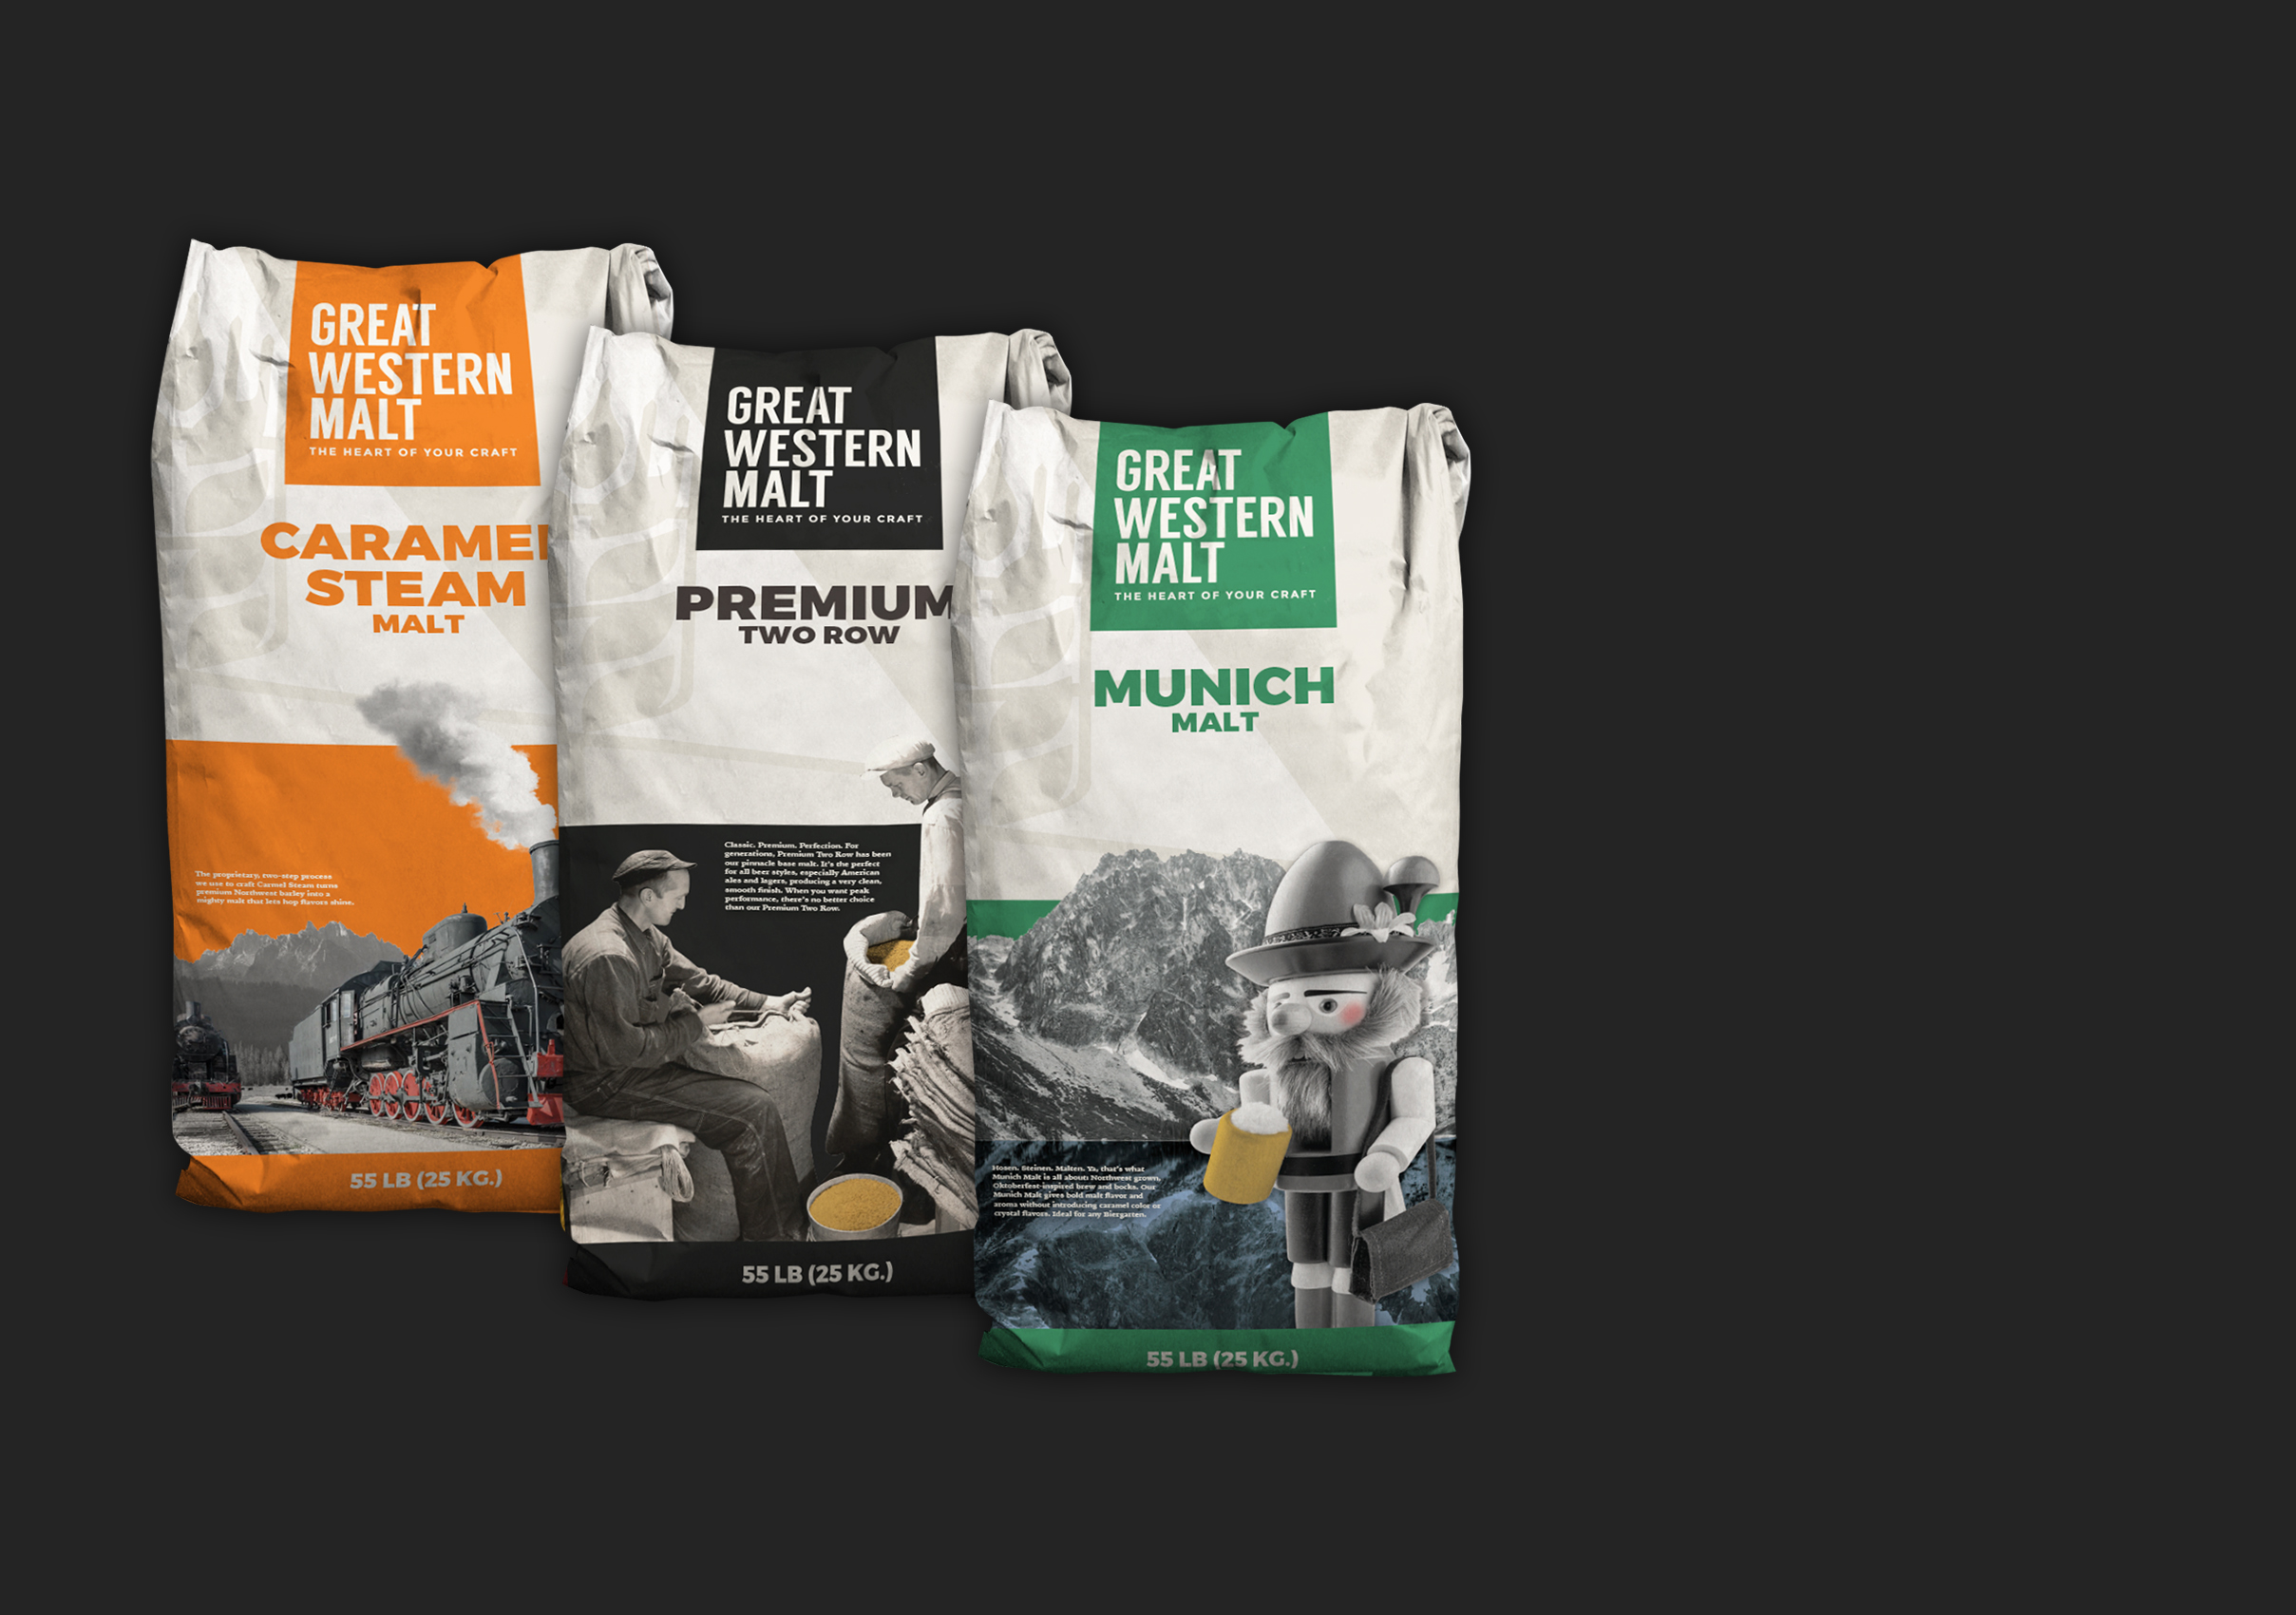 Great Western Malt - Collateral and product design for a rebranding for one of the Northwest's most iconic malt companies.